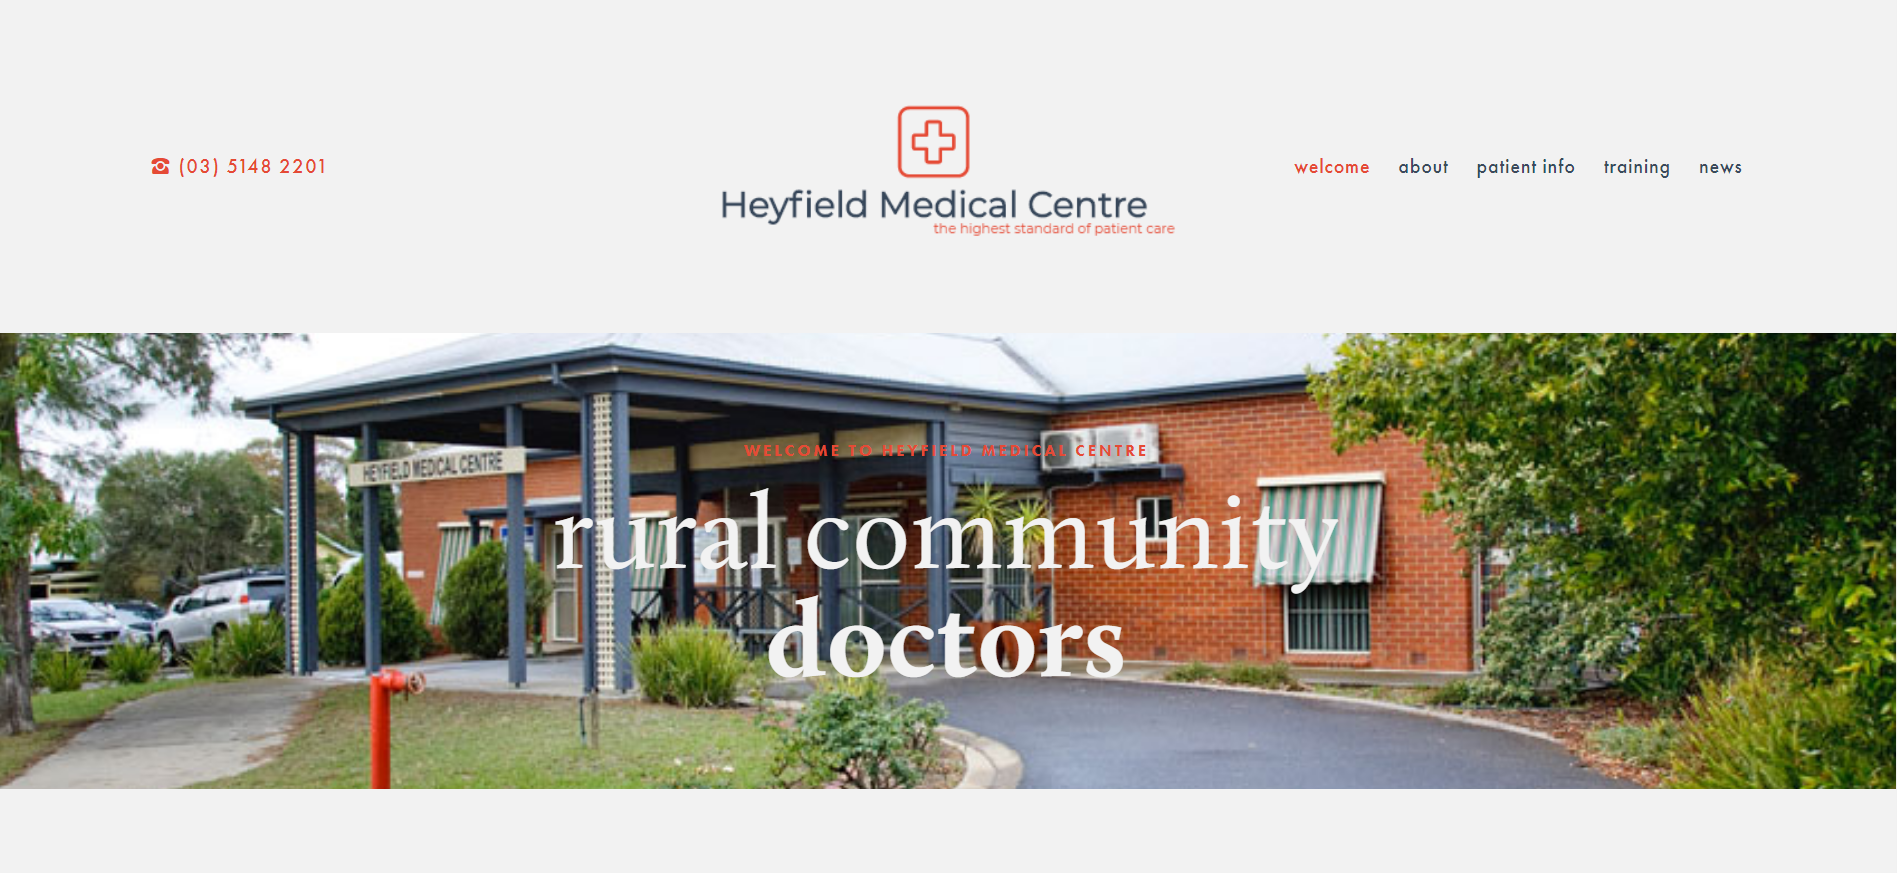 Heyfield Medical Centre